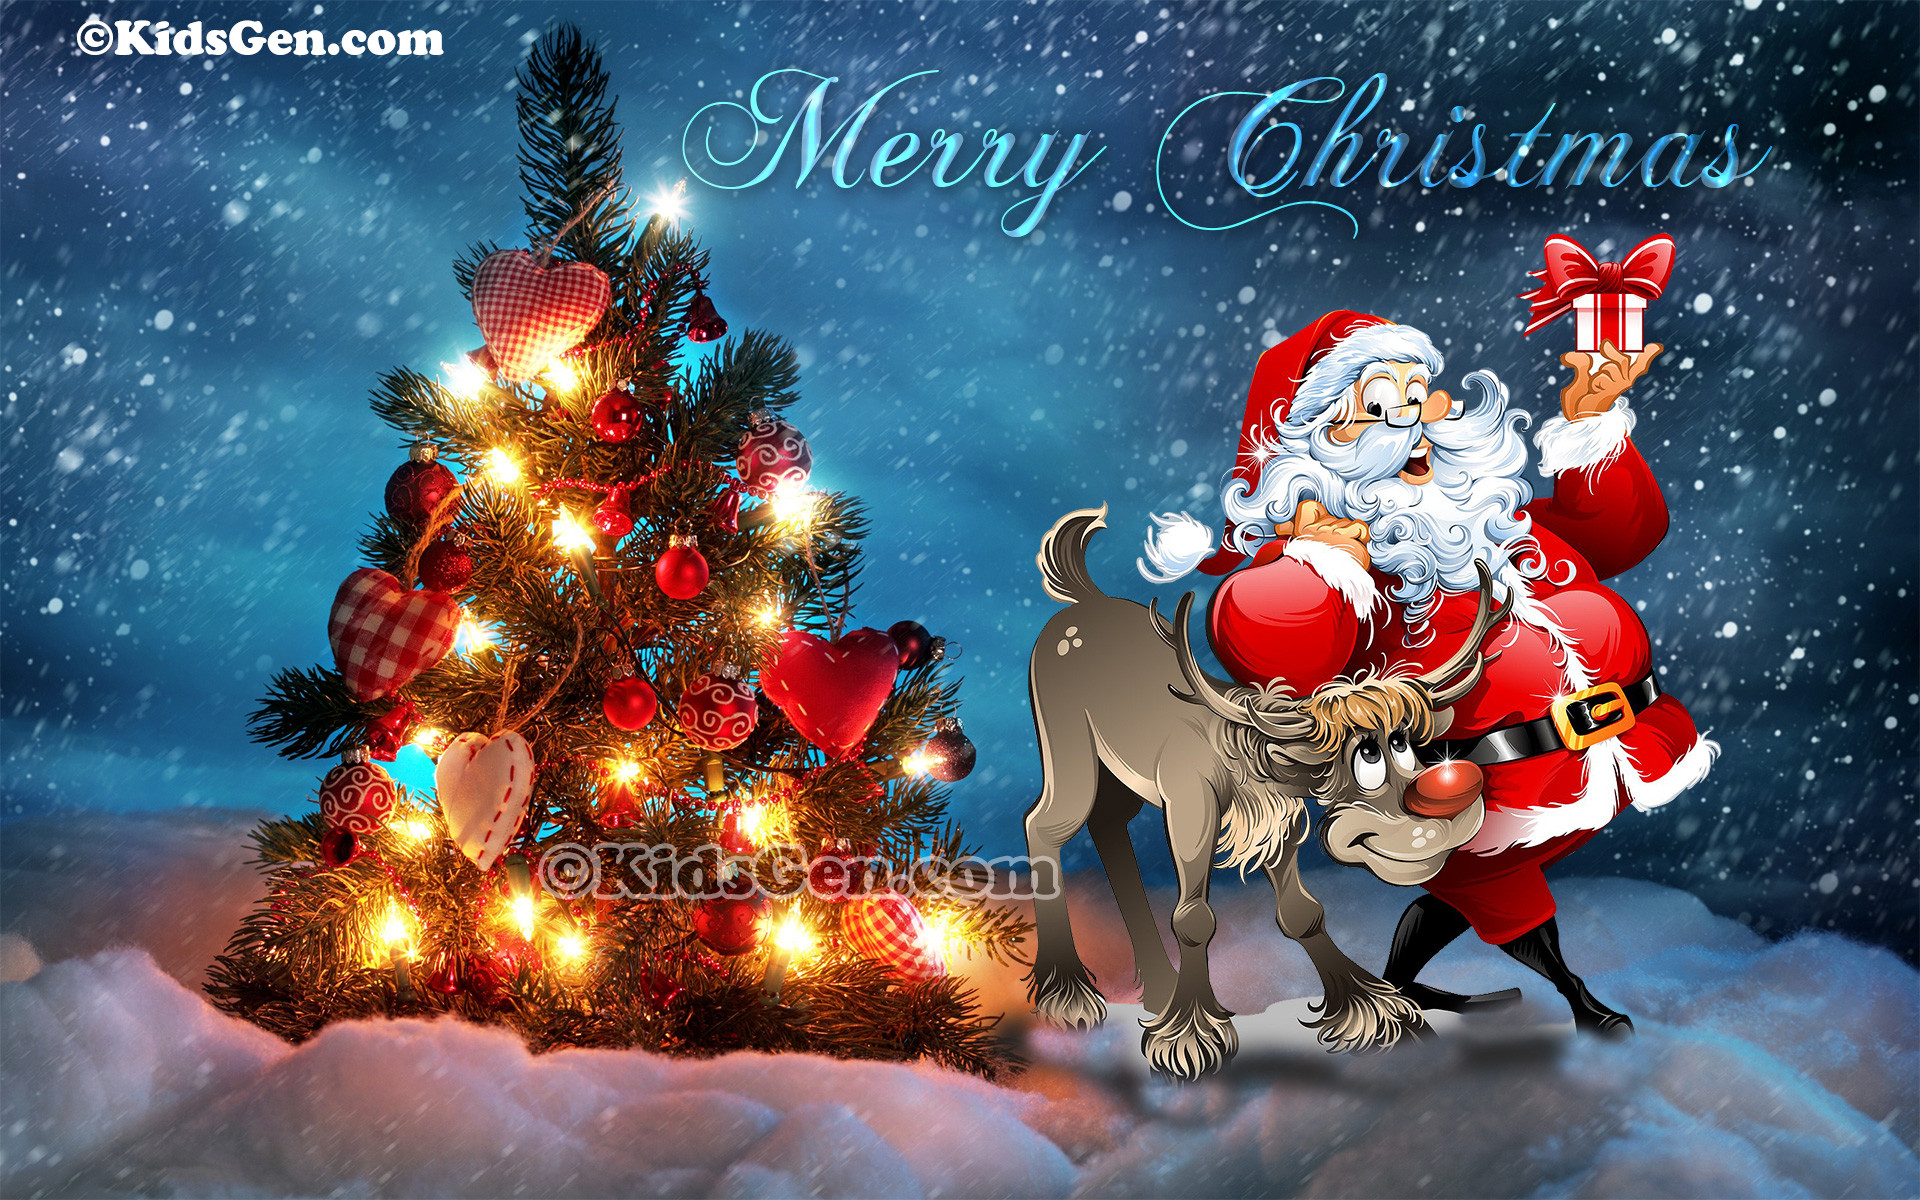 High Definition Christmas wallpaper featuring Santa and Rudolph